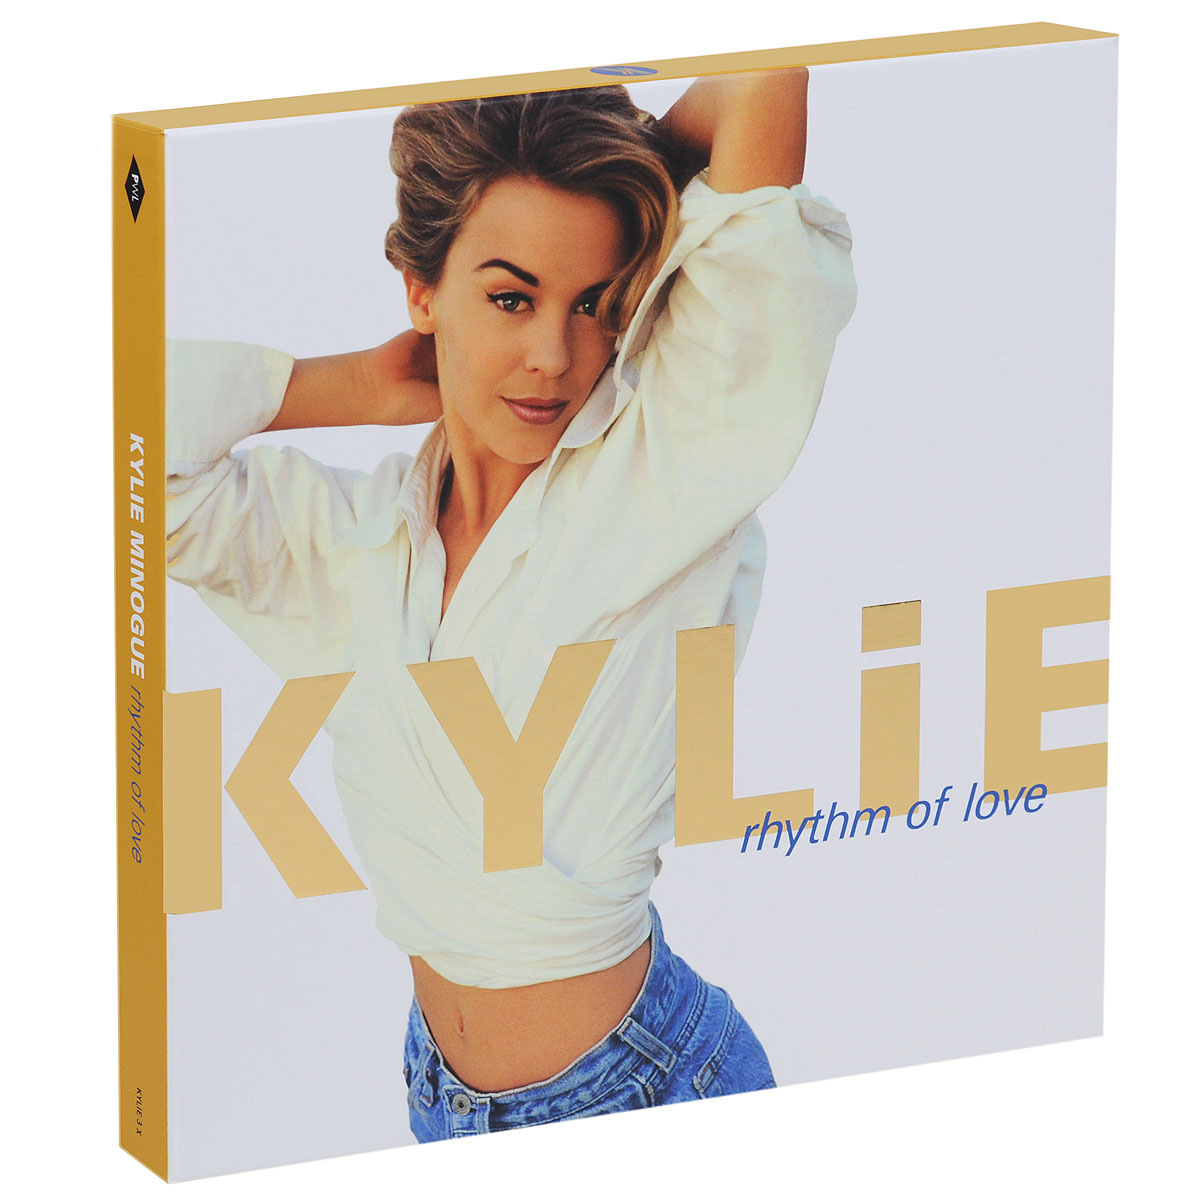 Кайли Миноуг Kylie Minogue. Rhythm Of Love (2 CD + DVD + LP)